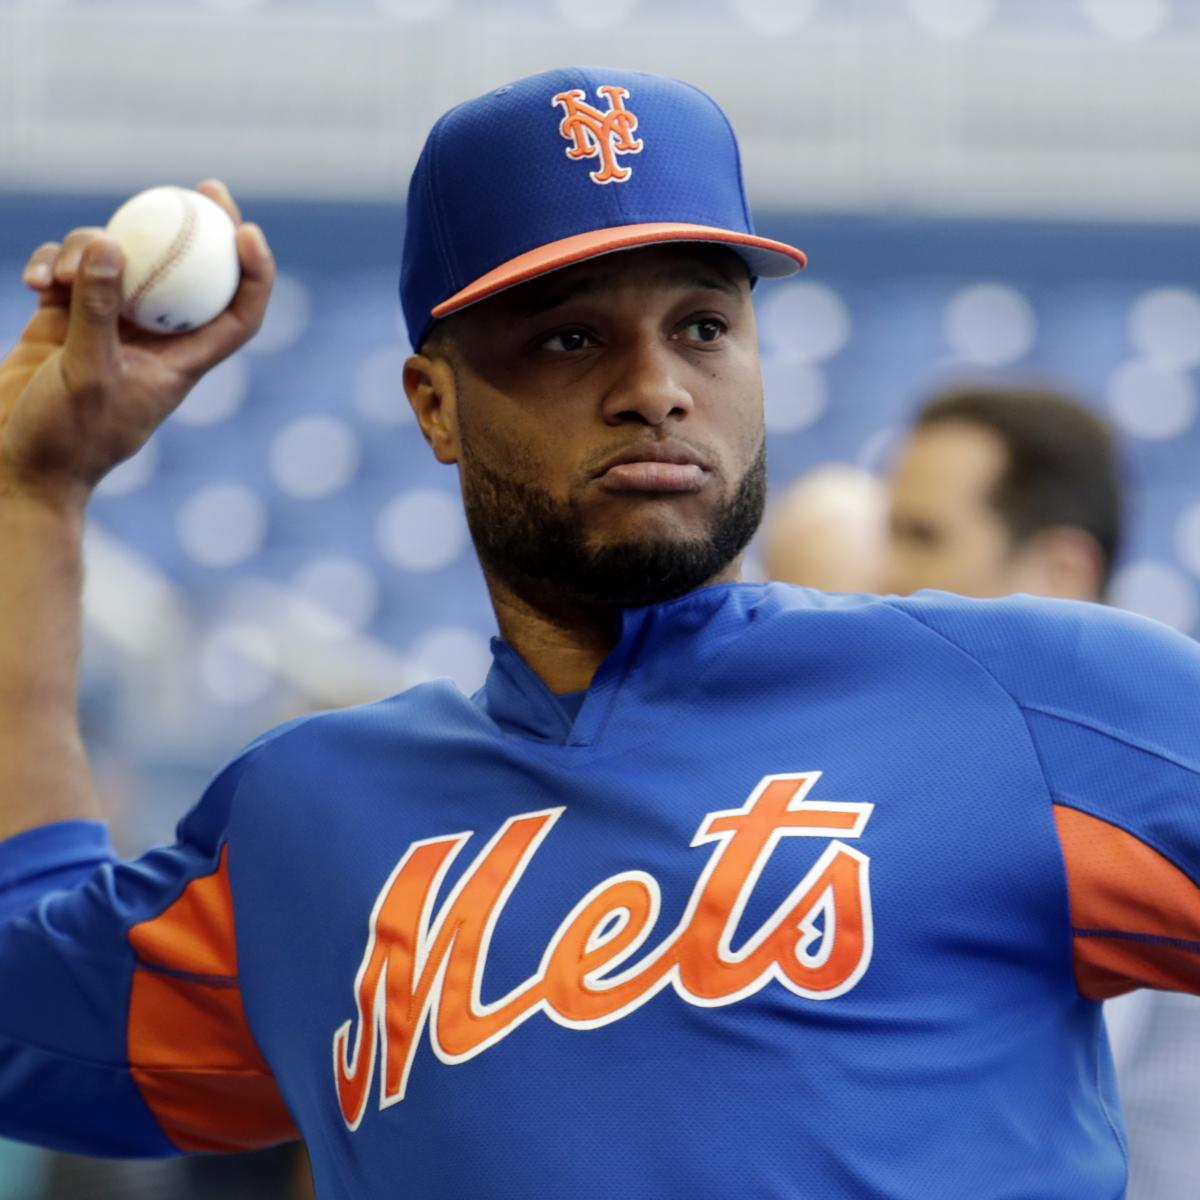 New York Mets second baseman Robinson Cano will reportedly head to the injured list with a quad injury he suffered while running out a grounder during Wednesday's game against the Washington Nationals ...